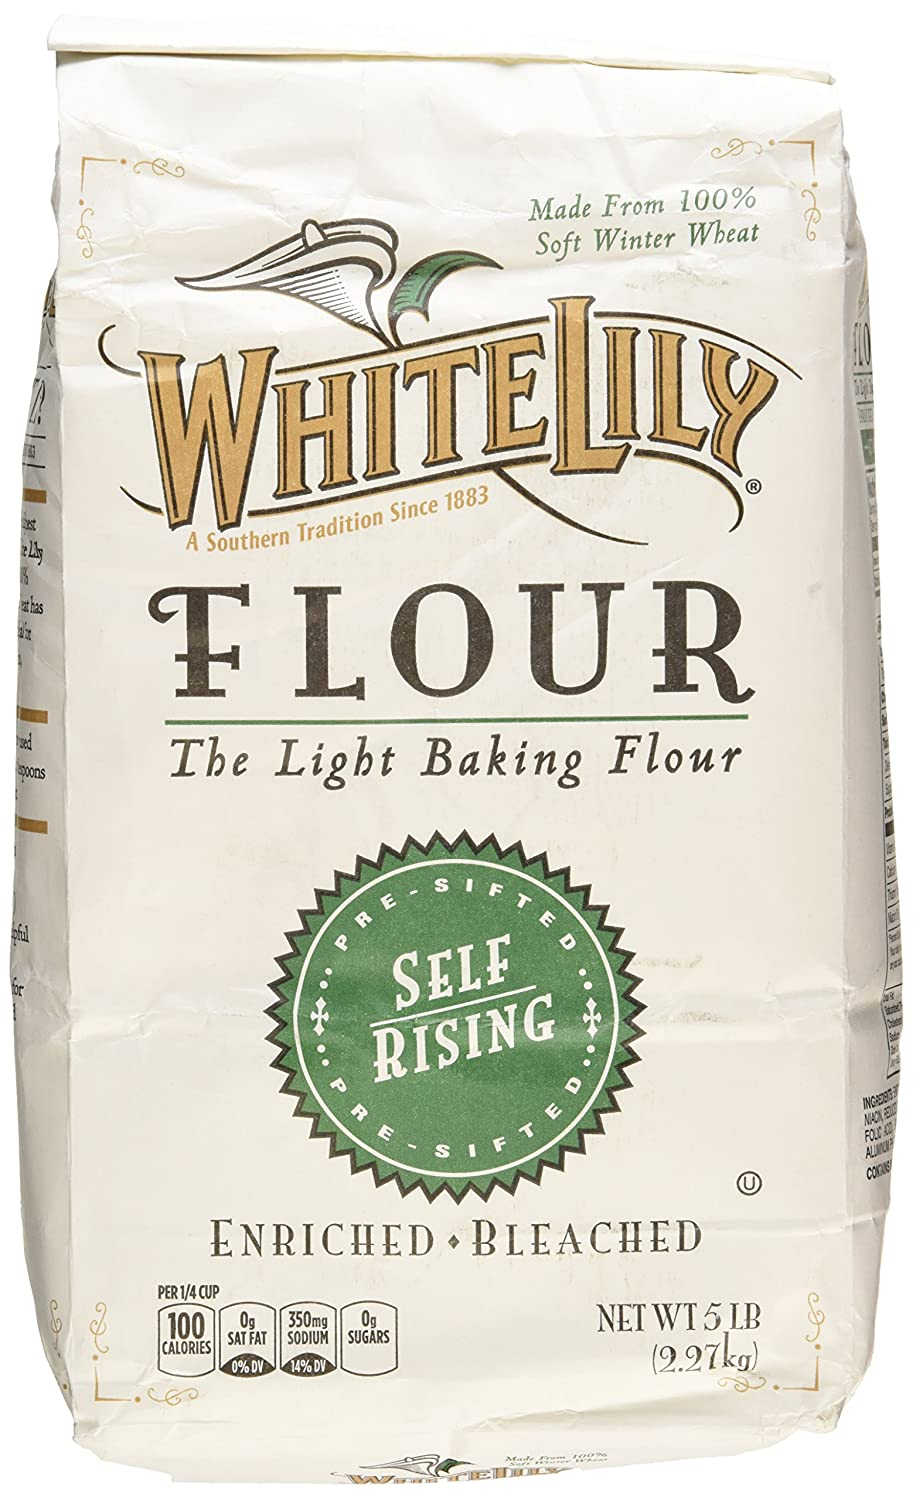 White Lily Self Rising Flour, 5-lb bags, 2-Pack